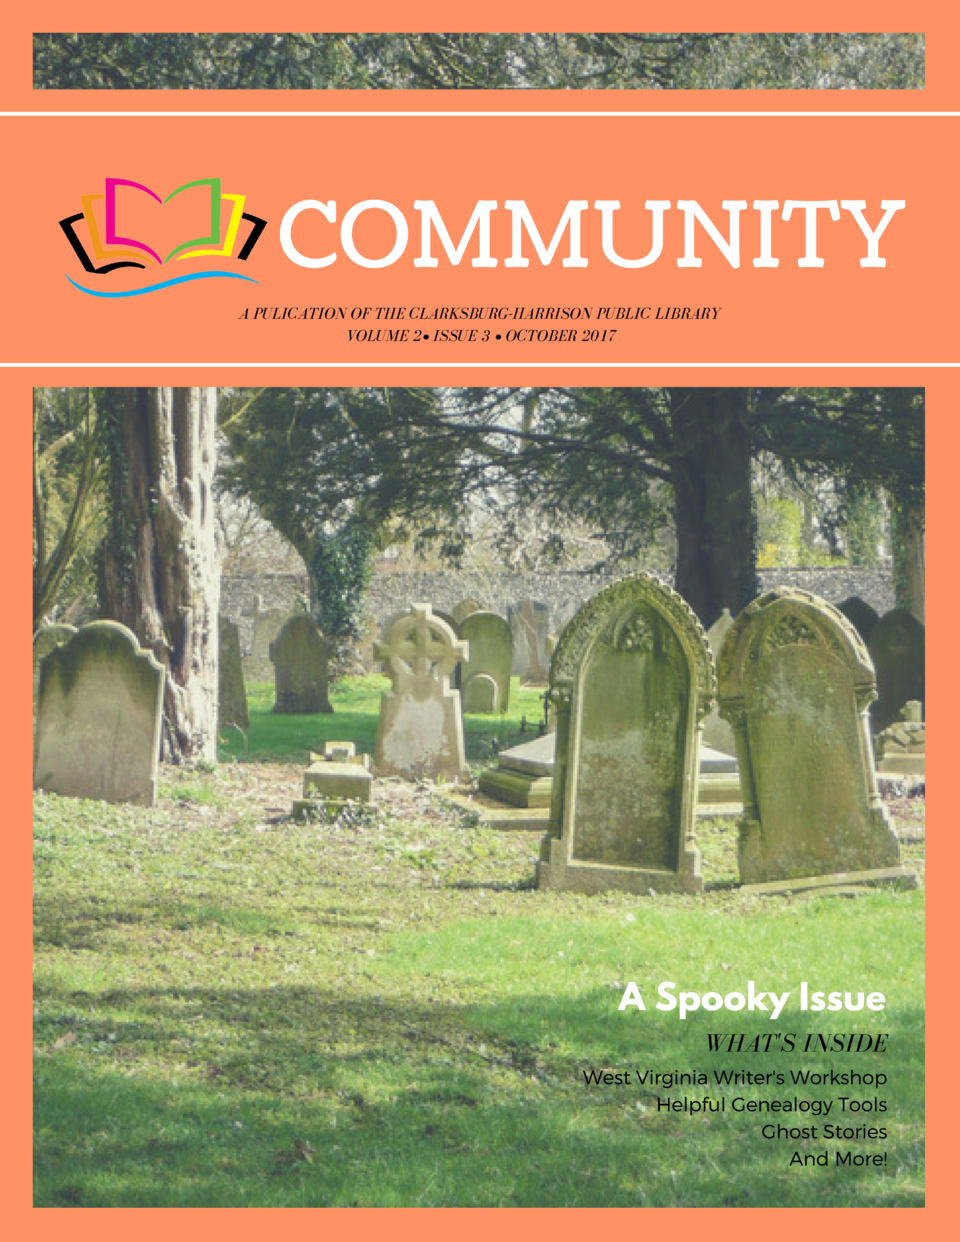 COMMUNITY A PULICATION OF THE CLARKSBURG-HARRISON PUBLIC LIBRARY VOLUME 2    ISSUE 3     OCTOBER 2017  A Spooky Issue WHAT...